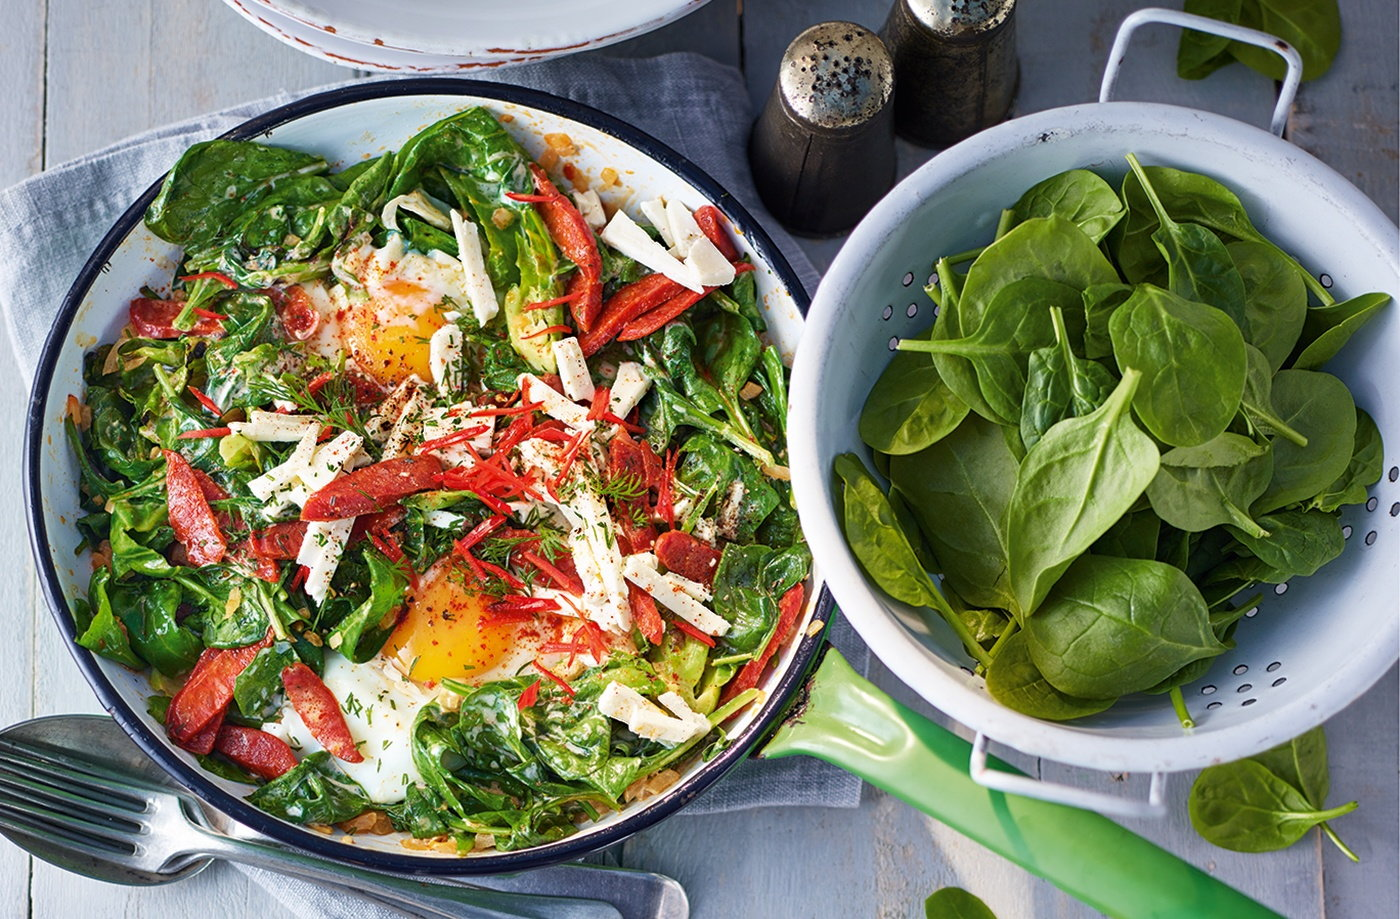 Spinach menemen